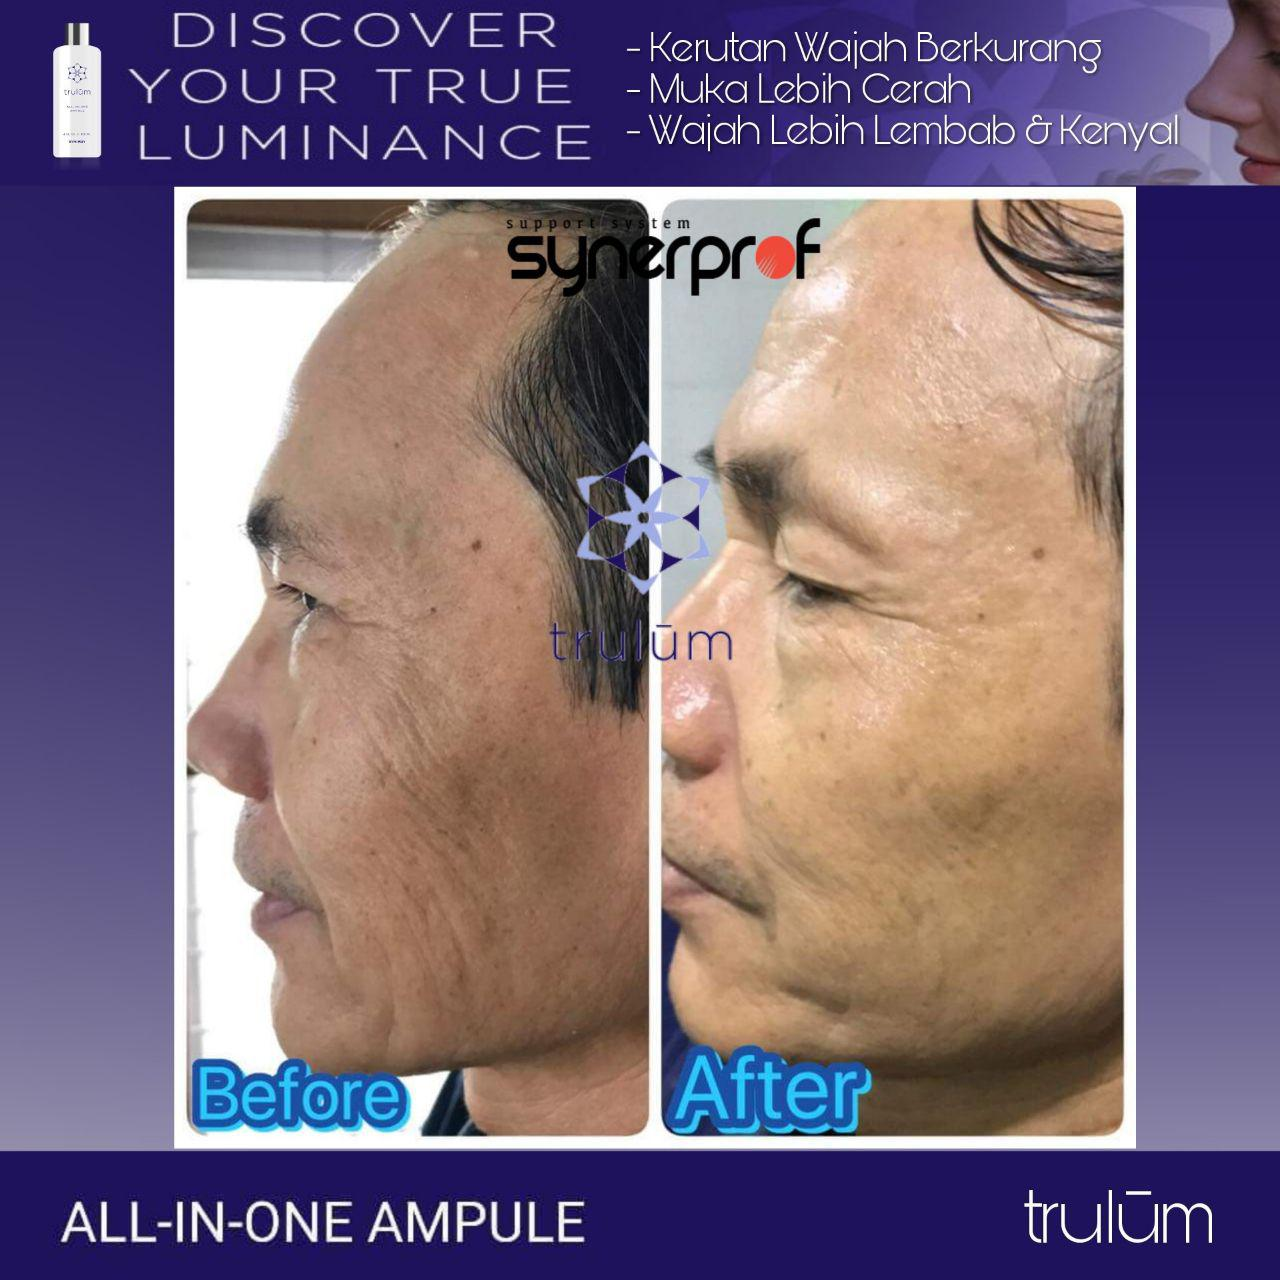 Jual Trulum All In One Ampoule Di Kuta Makmur WA: 08112338376